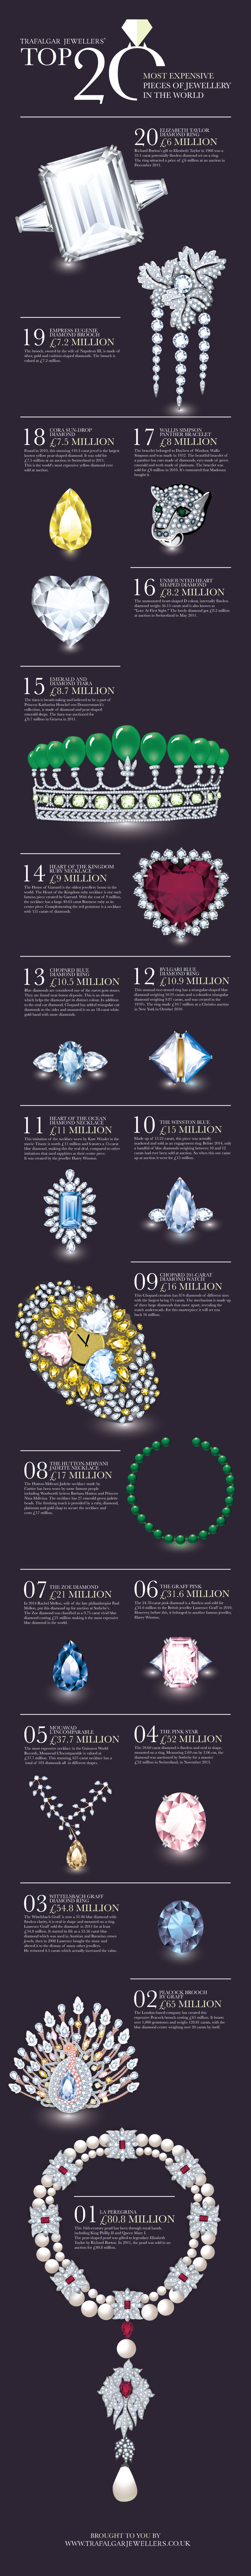 Top 20 Most Expensive Pieces of Jewelry in the World